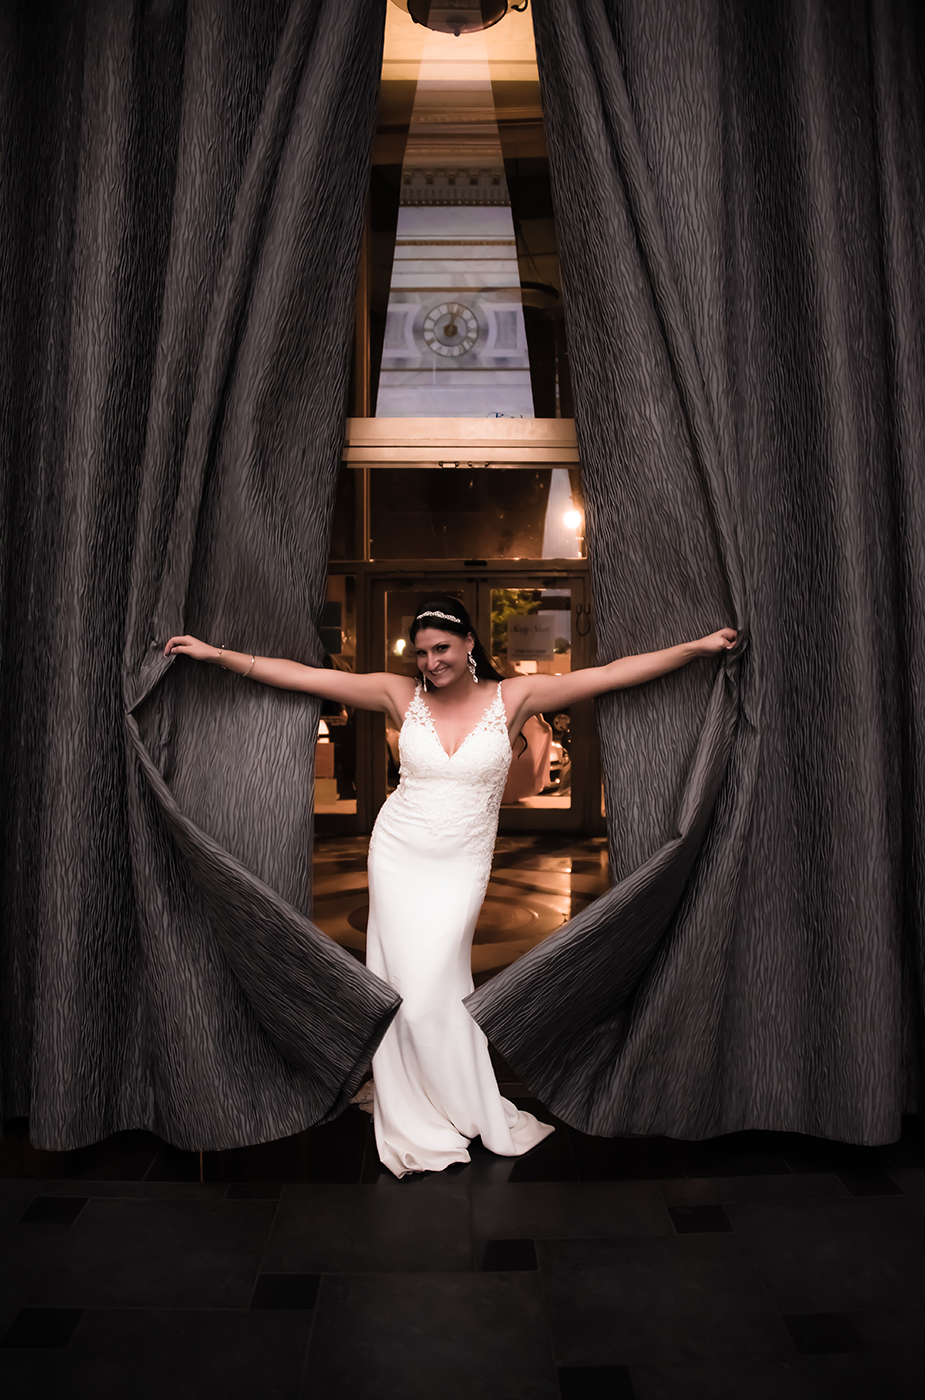 All Occasions Photography Albany NY - Wedding Photography Bride Opening Long Curtains